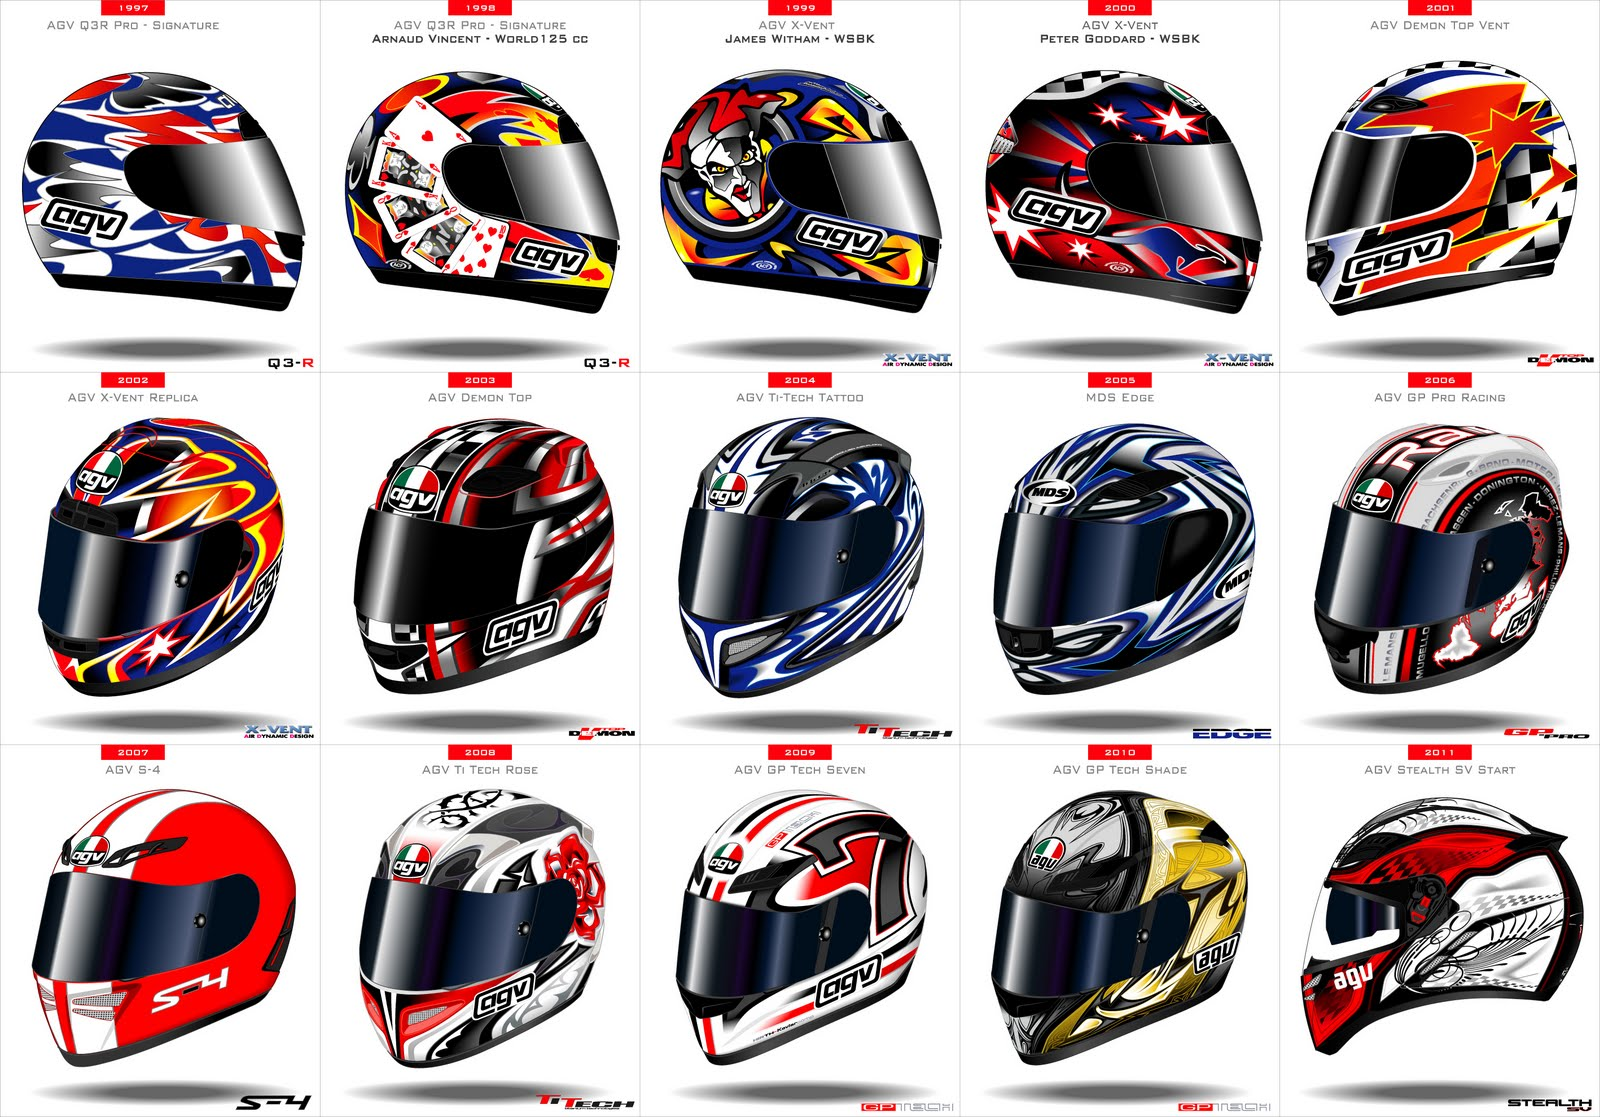 agv design Agv motorcycle helmets are in stock at discounted prices with free shipping find the agv helmet you need here at revzilla.